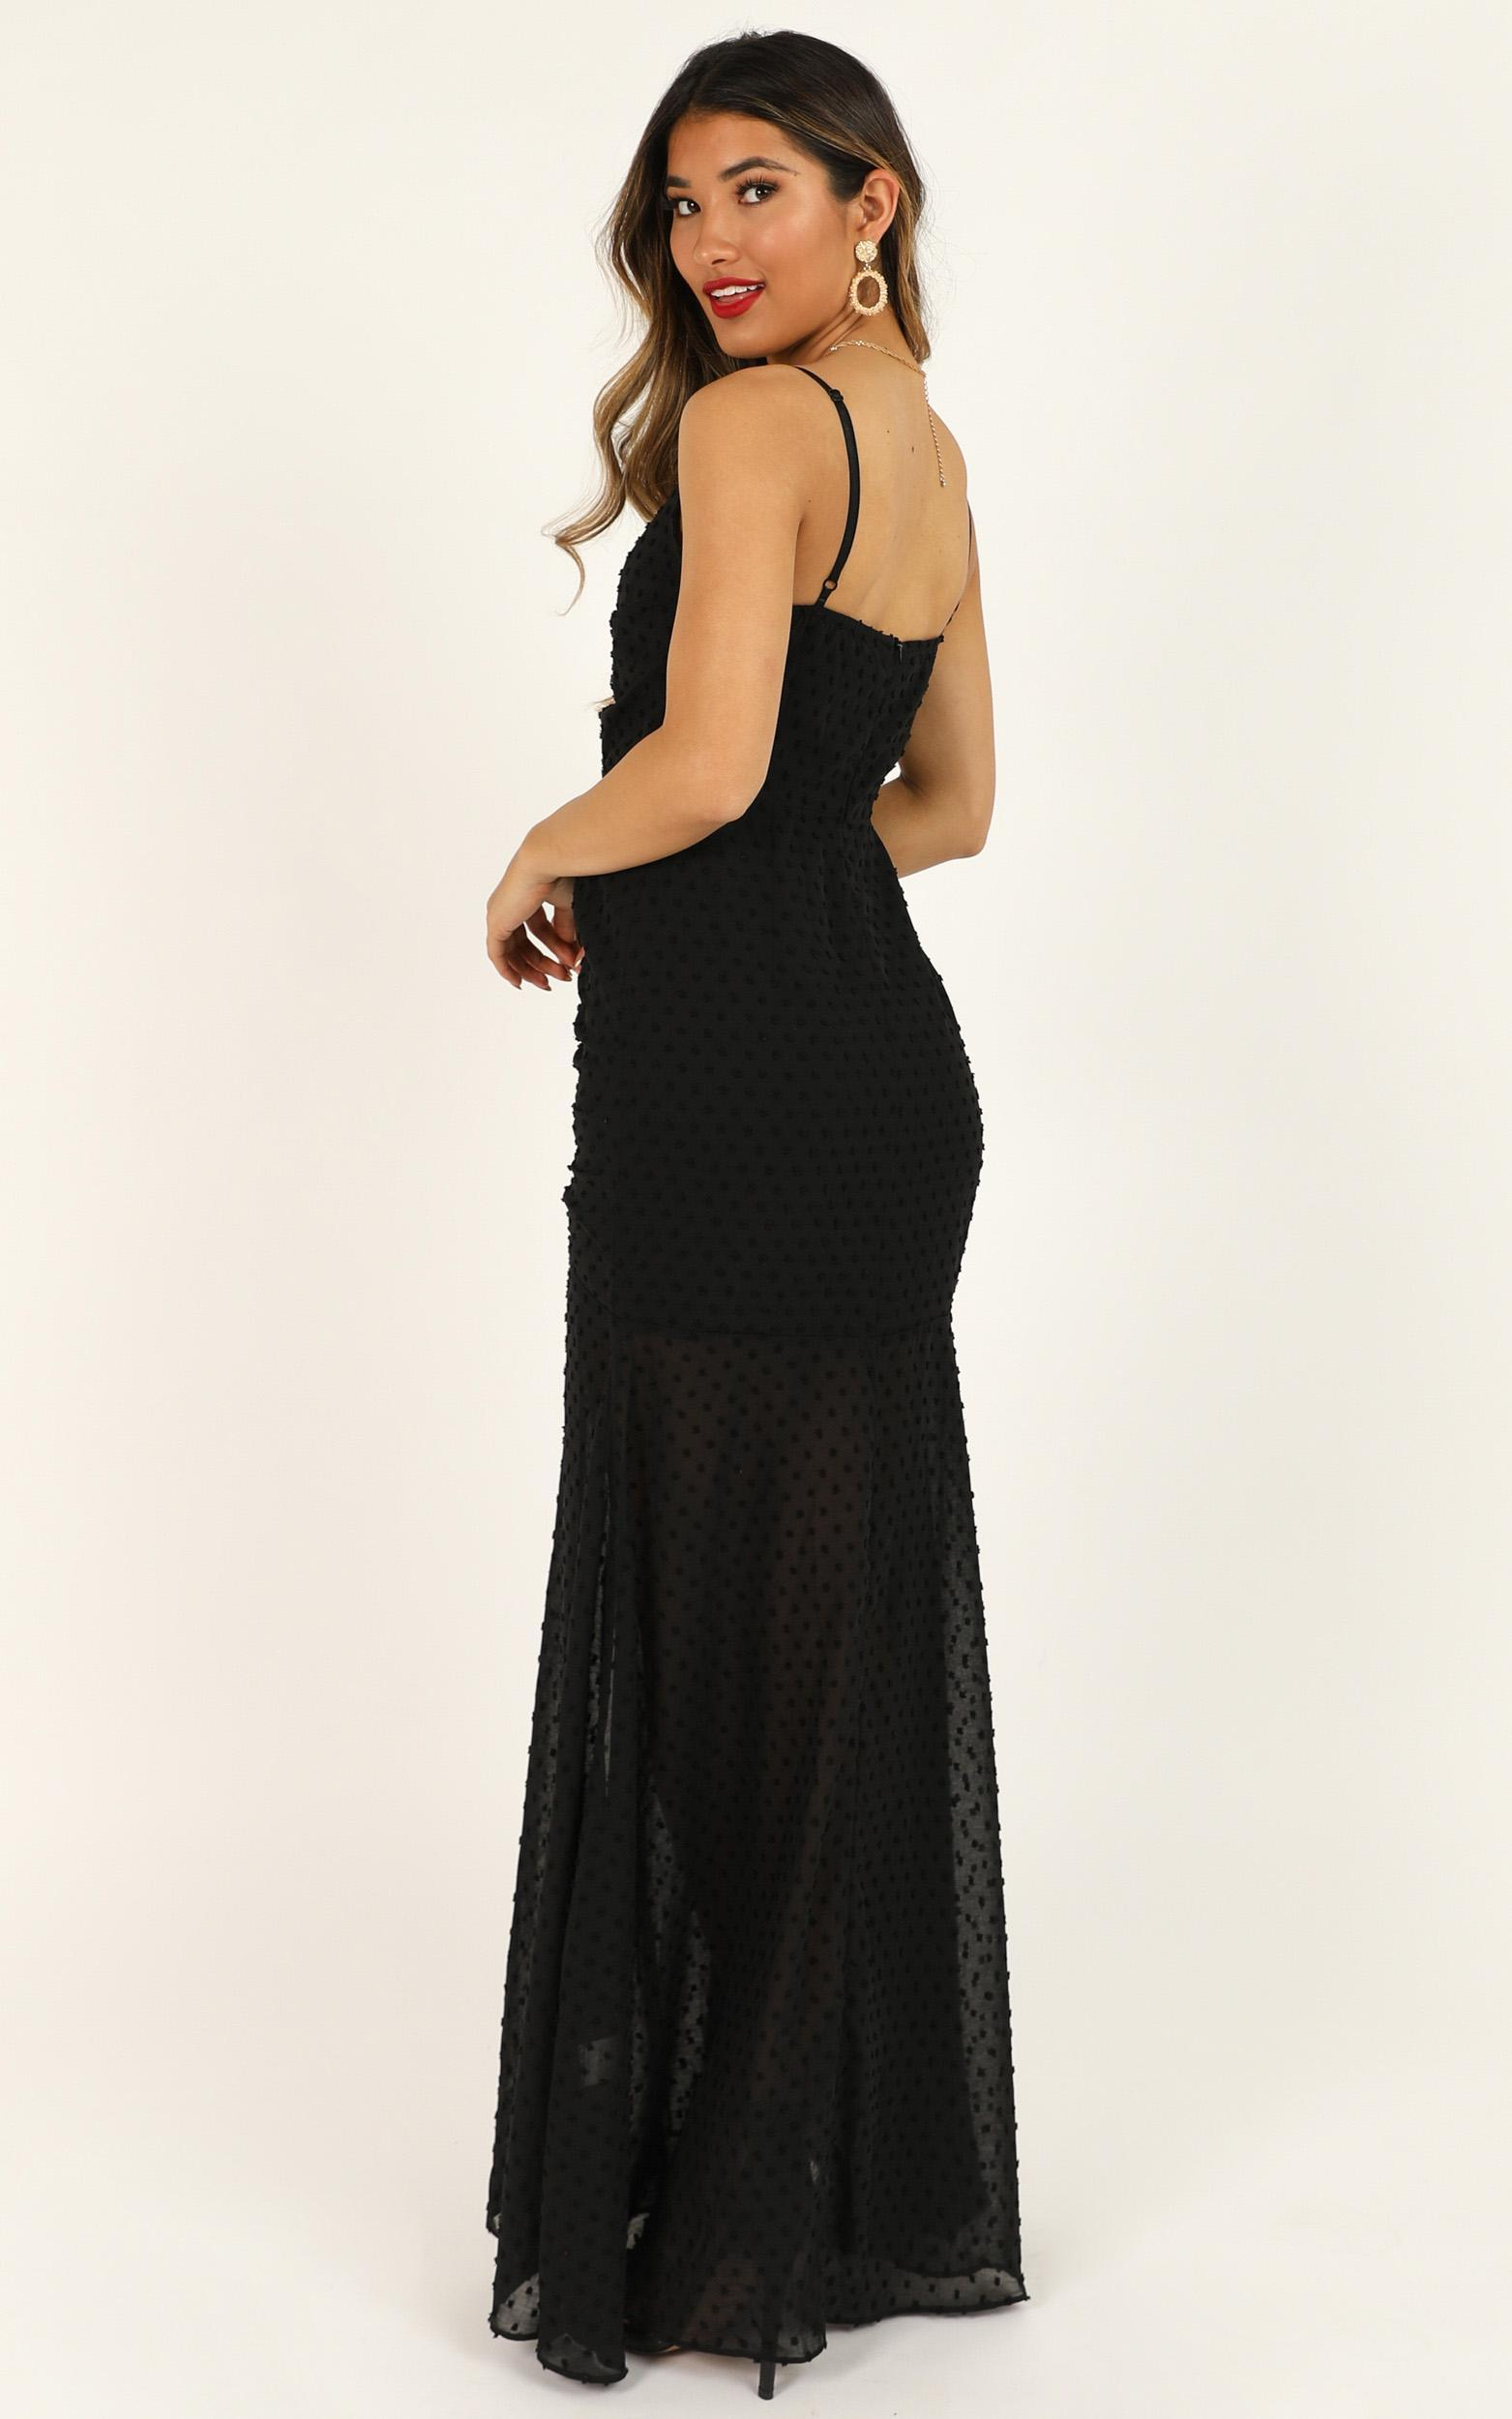 Play nice maxi dress in black - 20 (XXXXL), Black, hi-res image number null